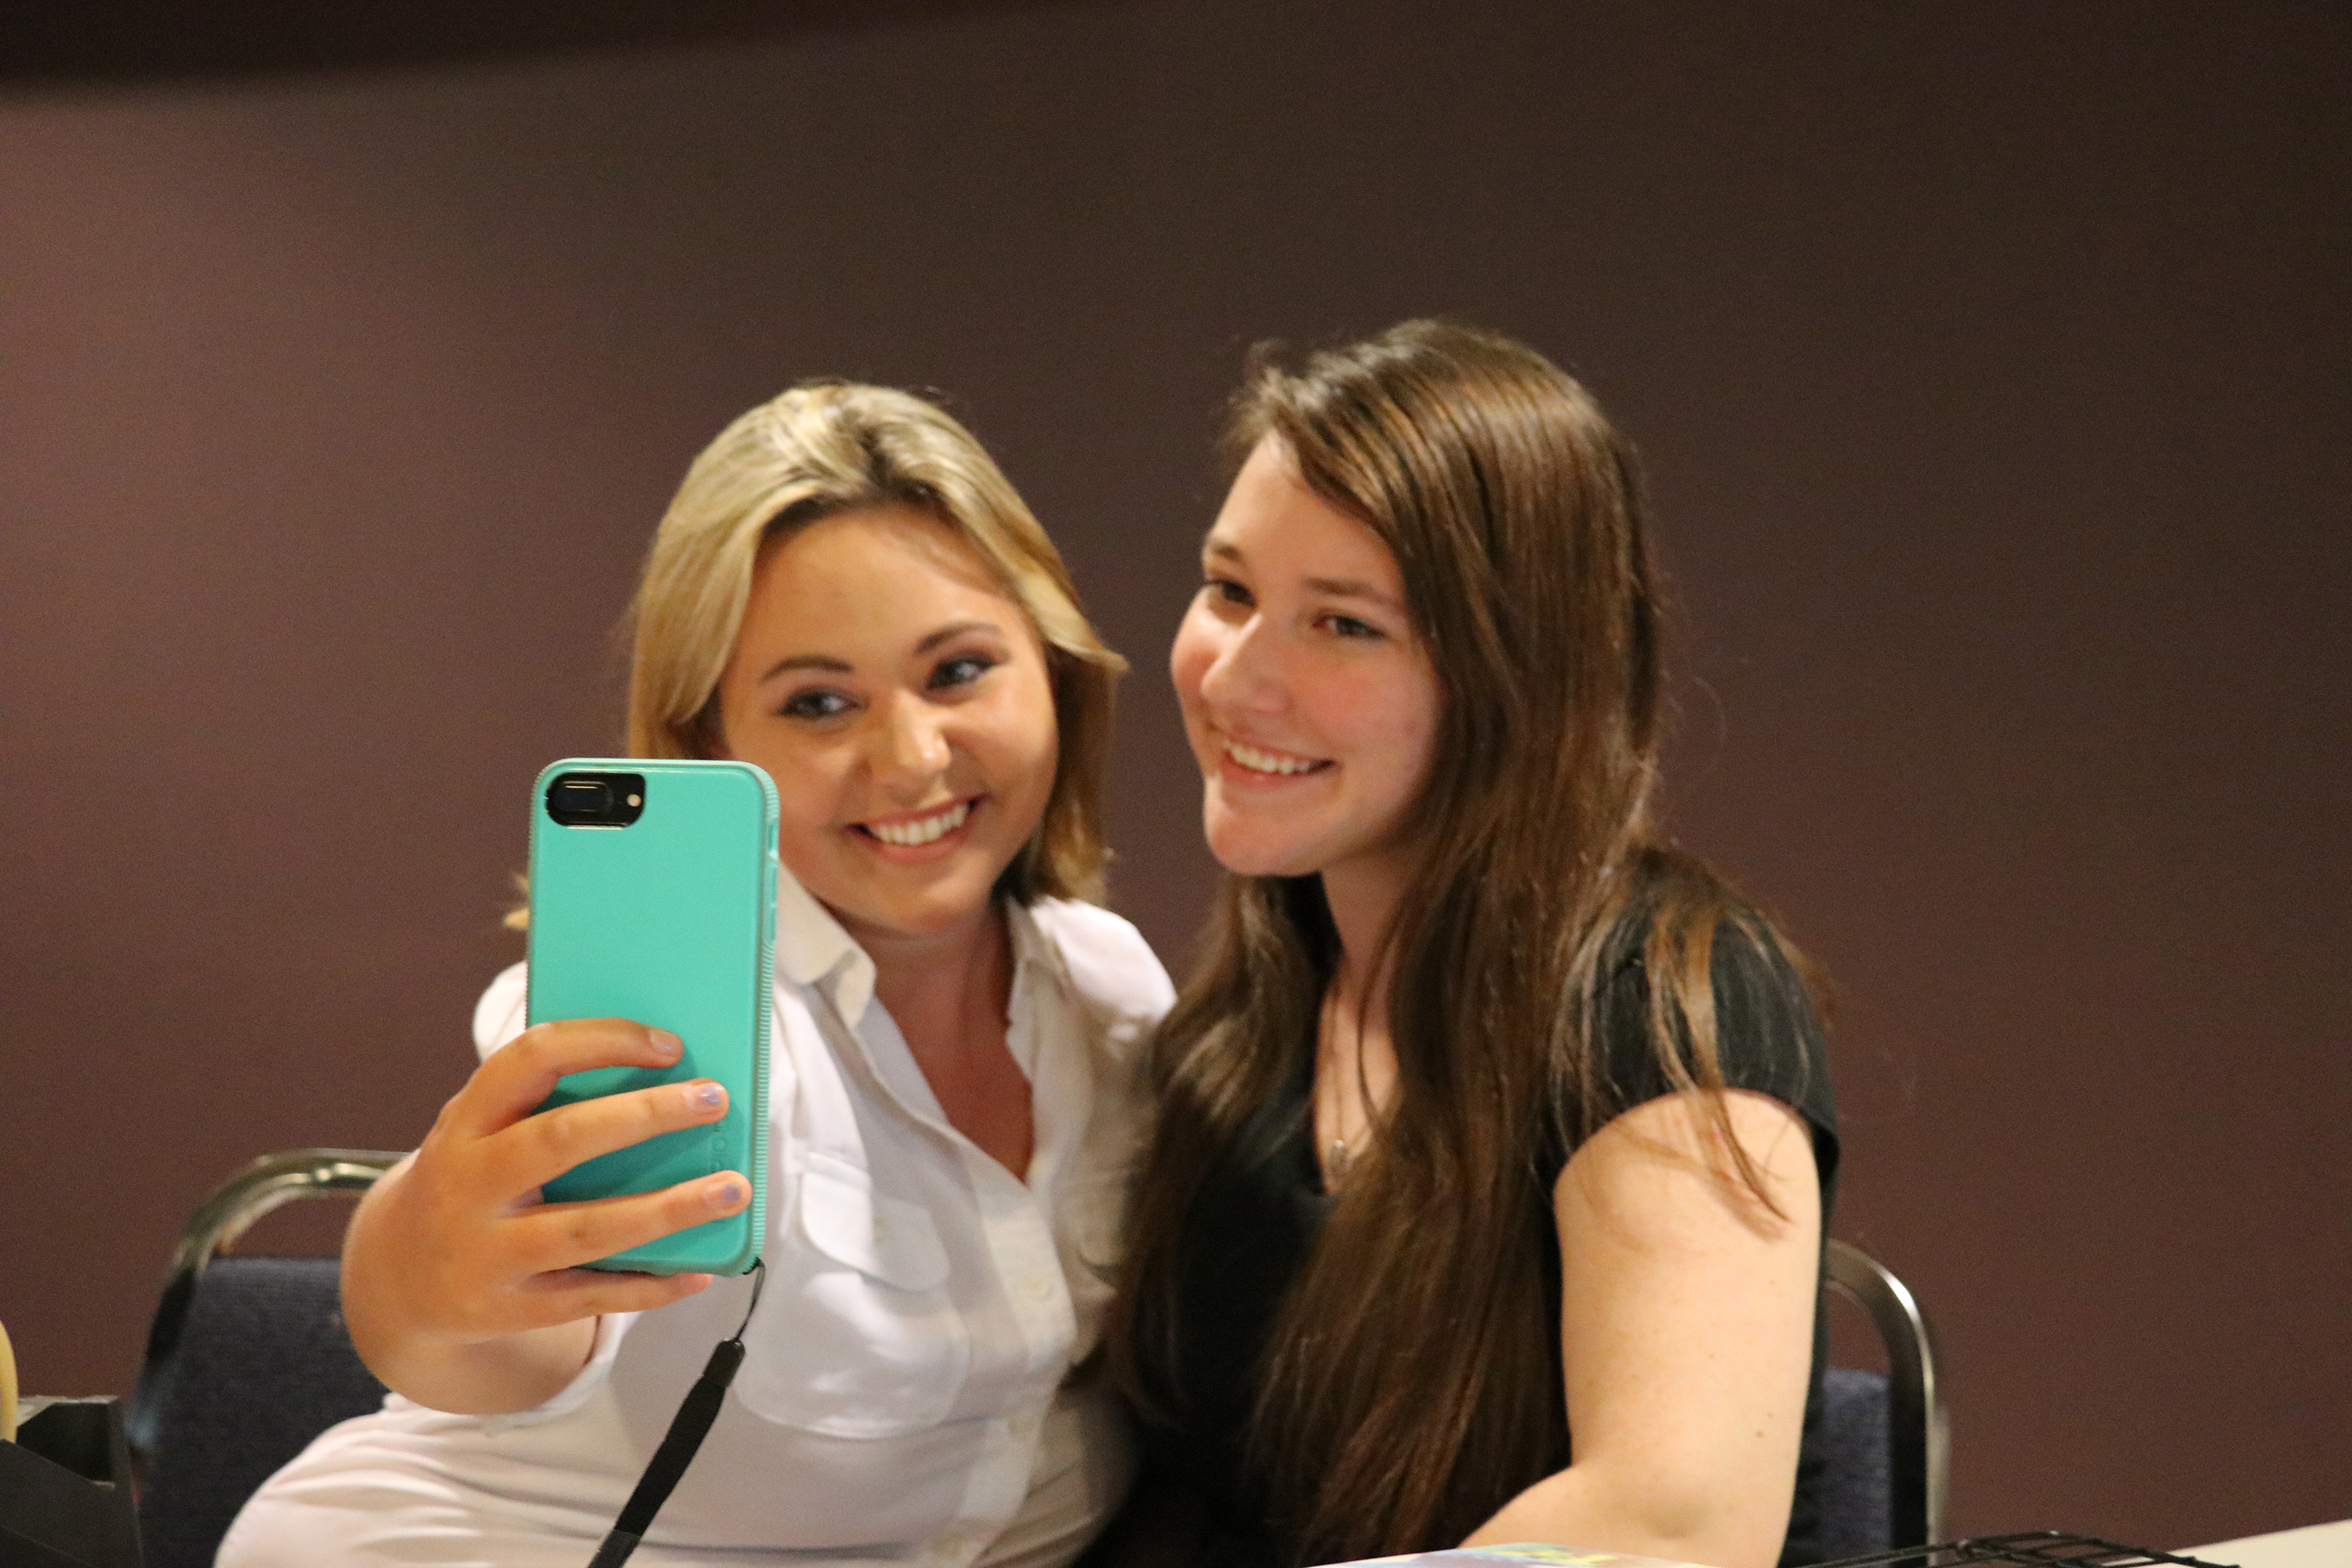 Two students taking a selfie